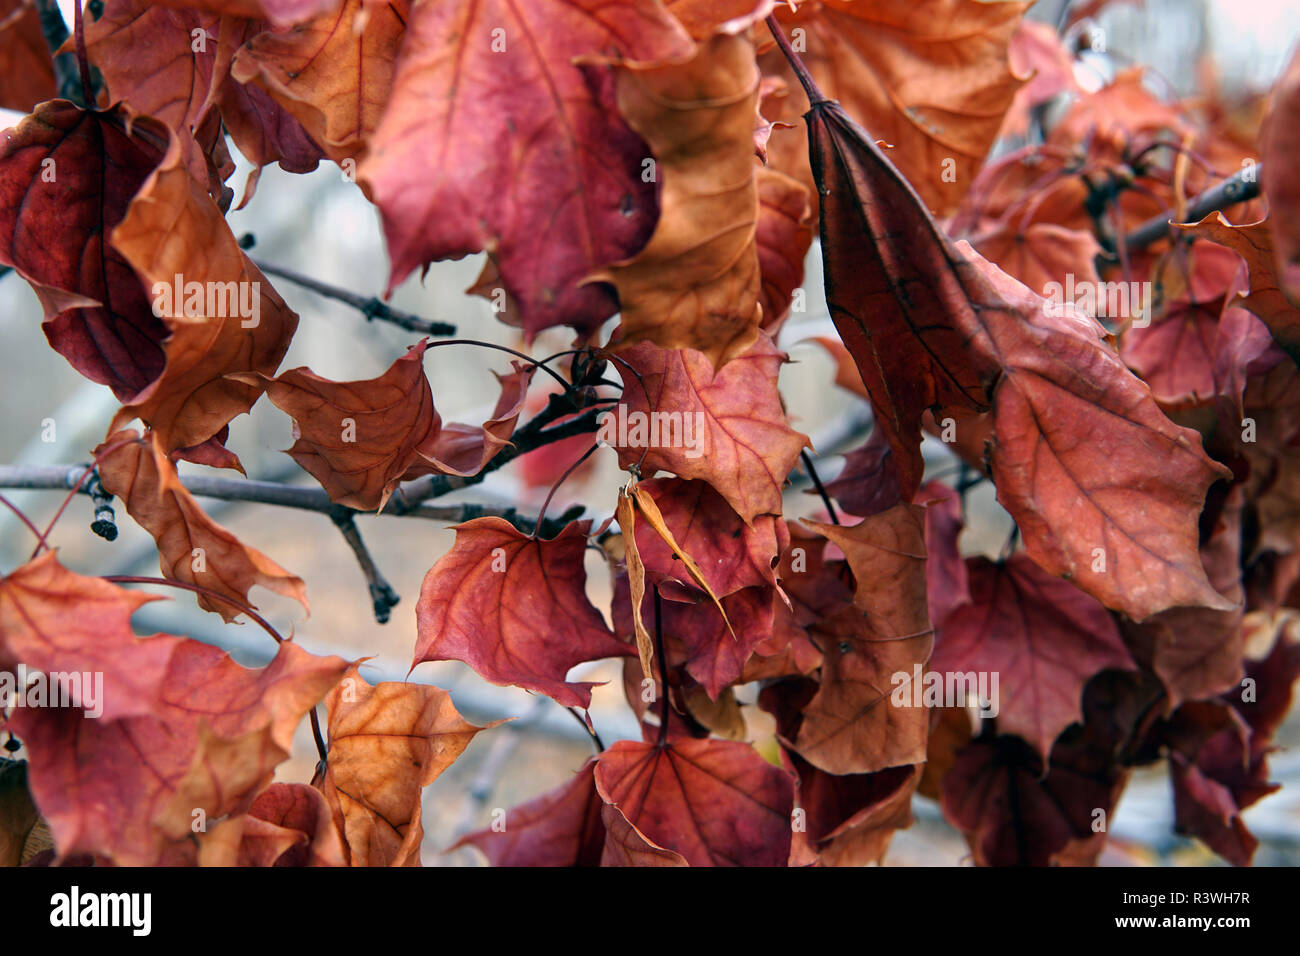 Yellow Foliage Of A Shrub In The Fall Season Stems Branches Of Red Color Around The Leaves Blue And Deep Purple Color Background Wet Plant Floral Stock Photo Alamy